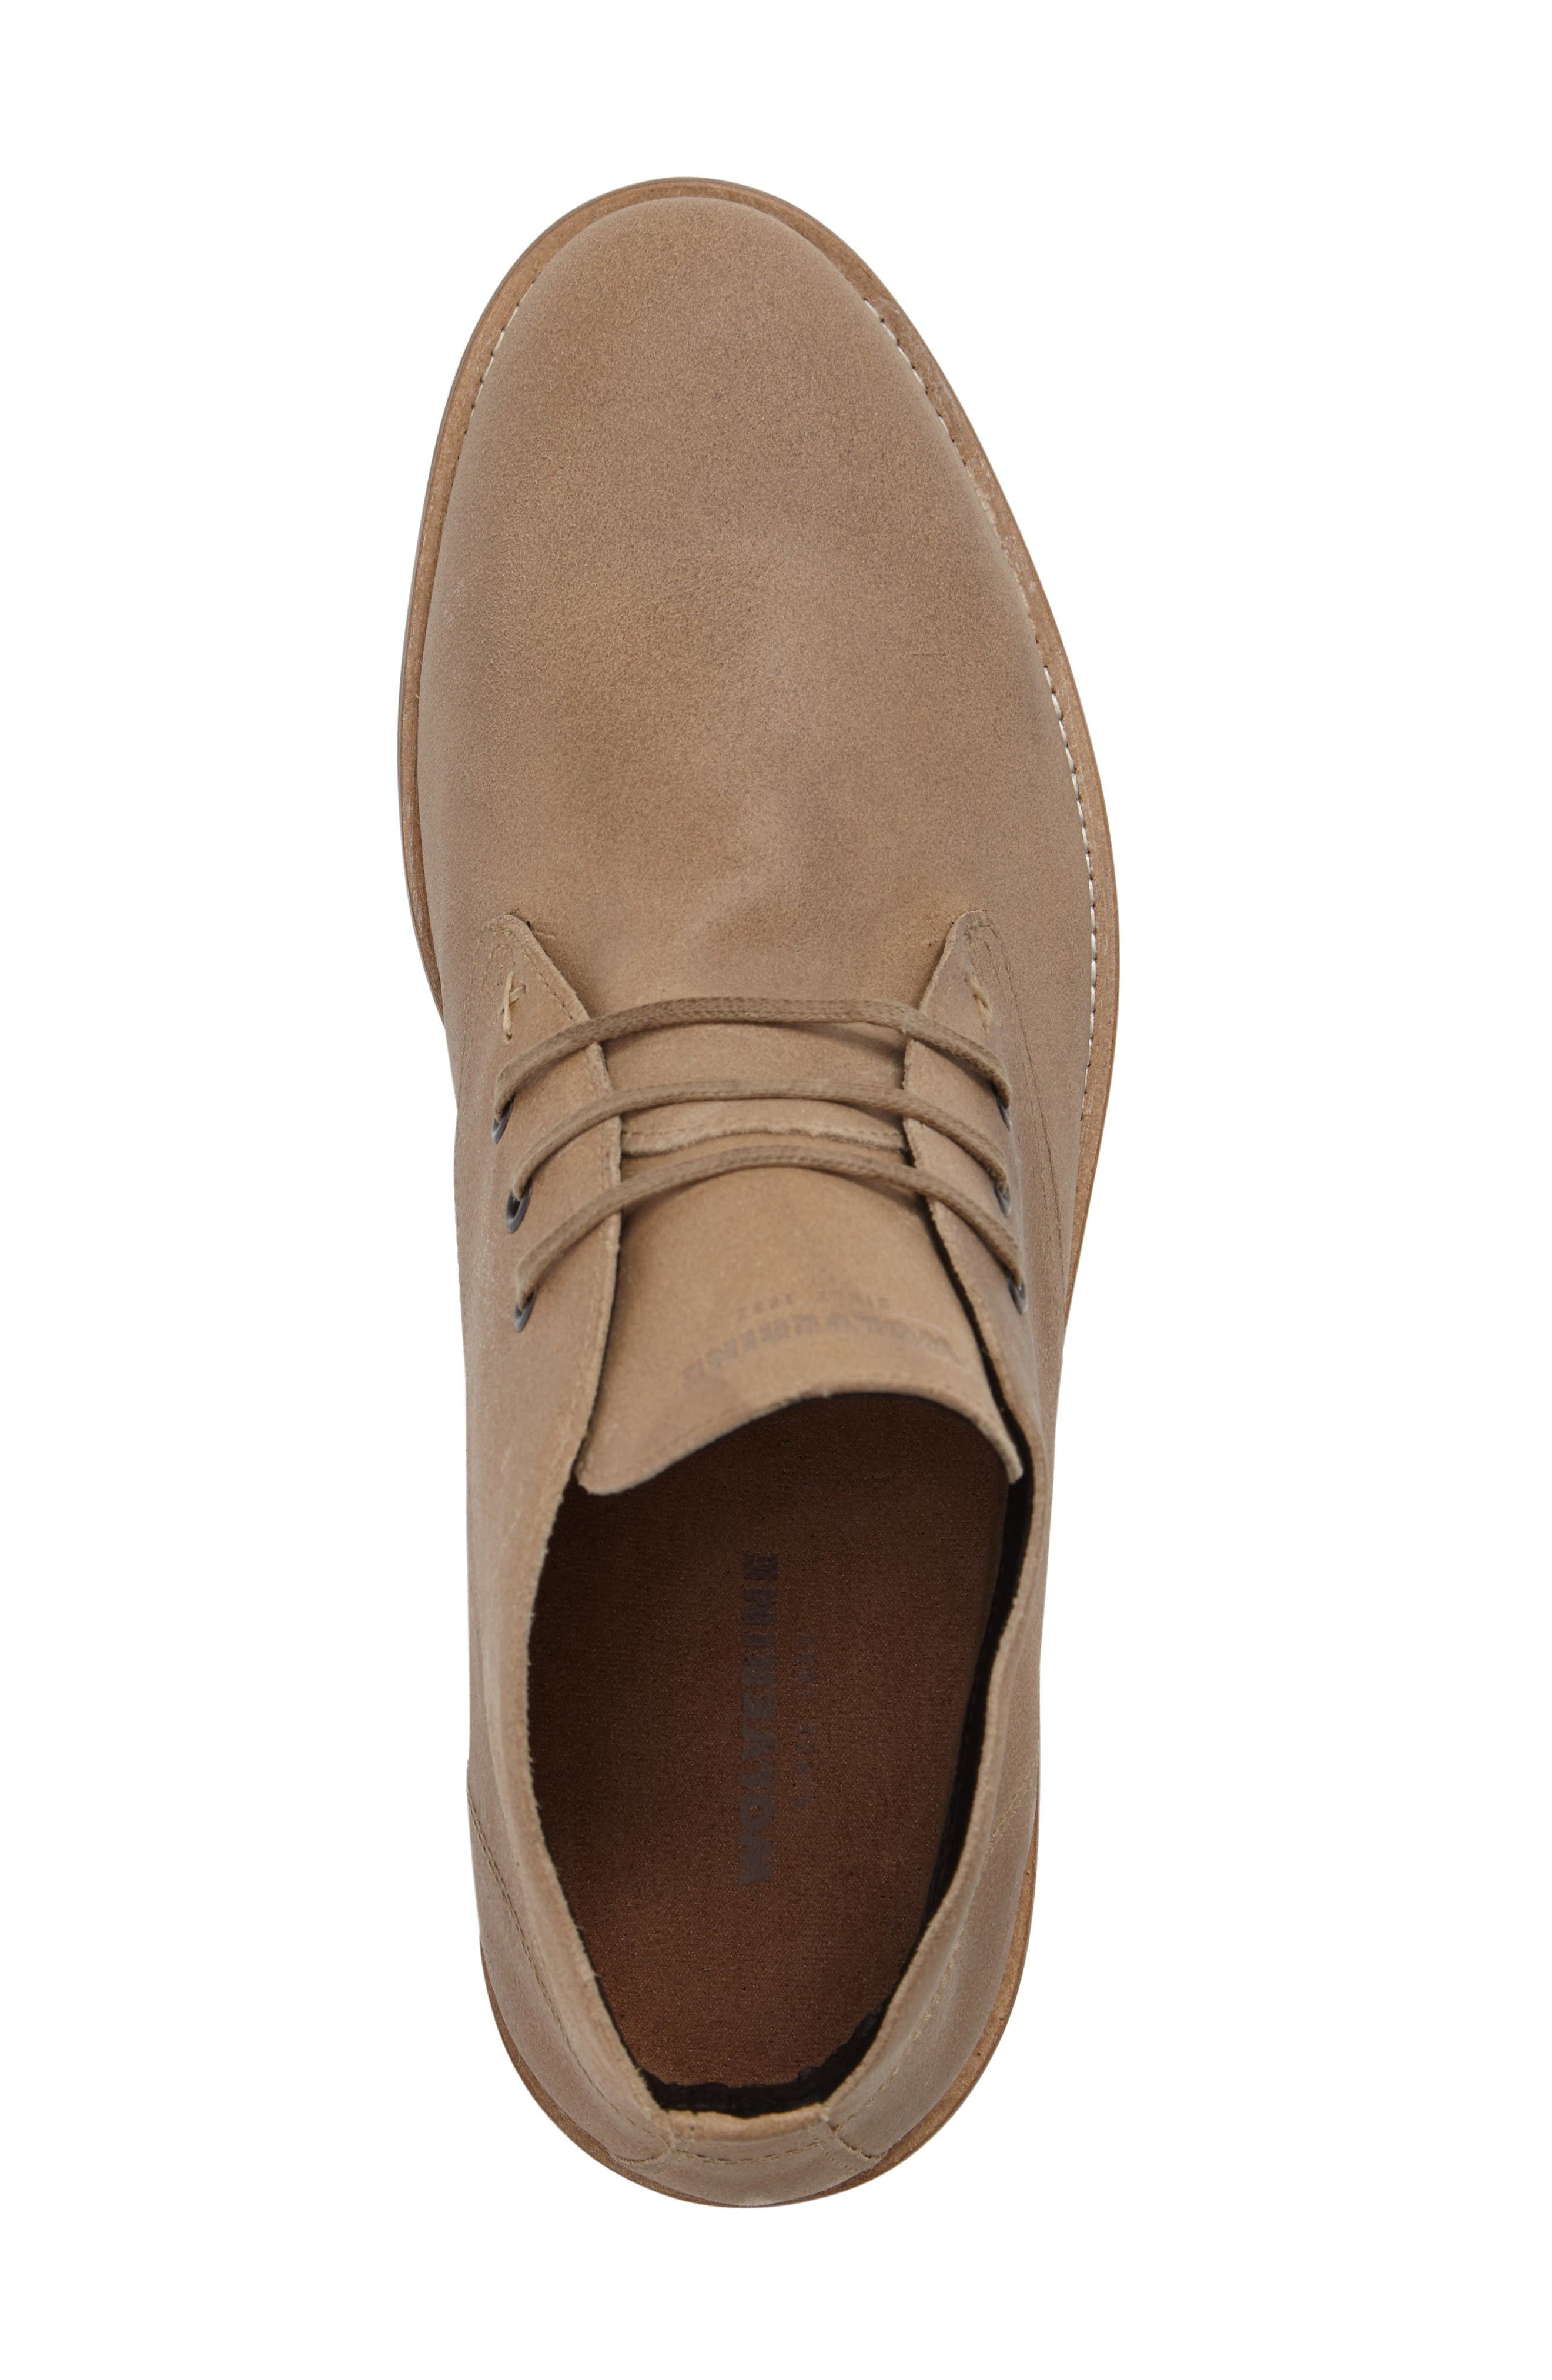 Gibson Chukka Boot,                             Alternate thumbnail 5, color,                             Stone Suede